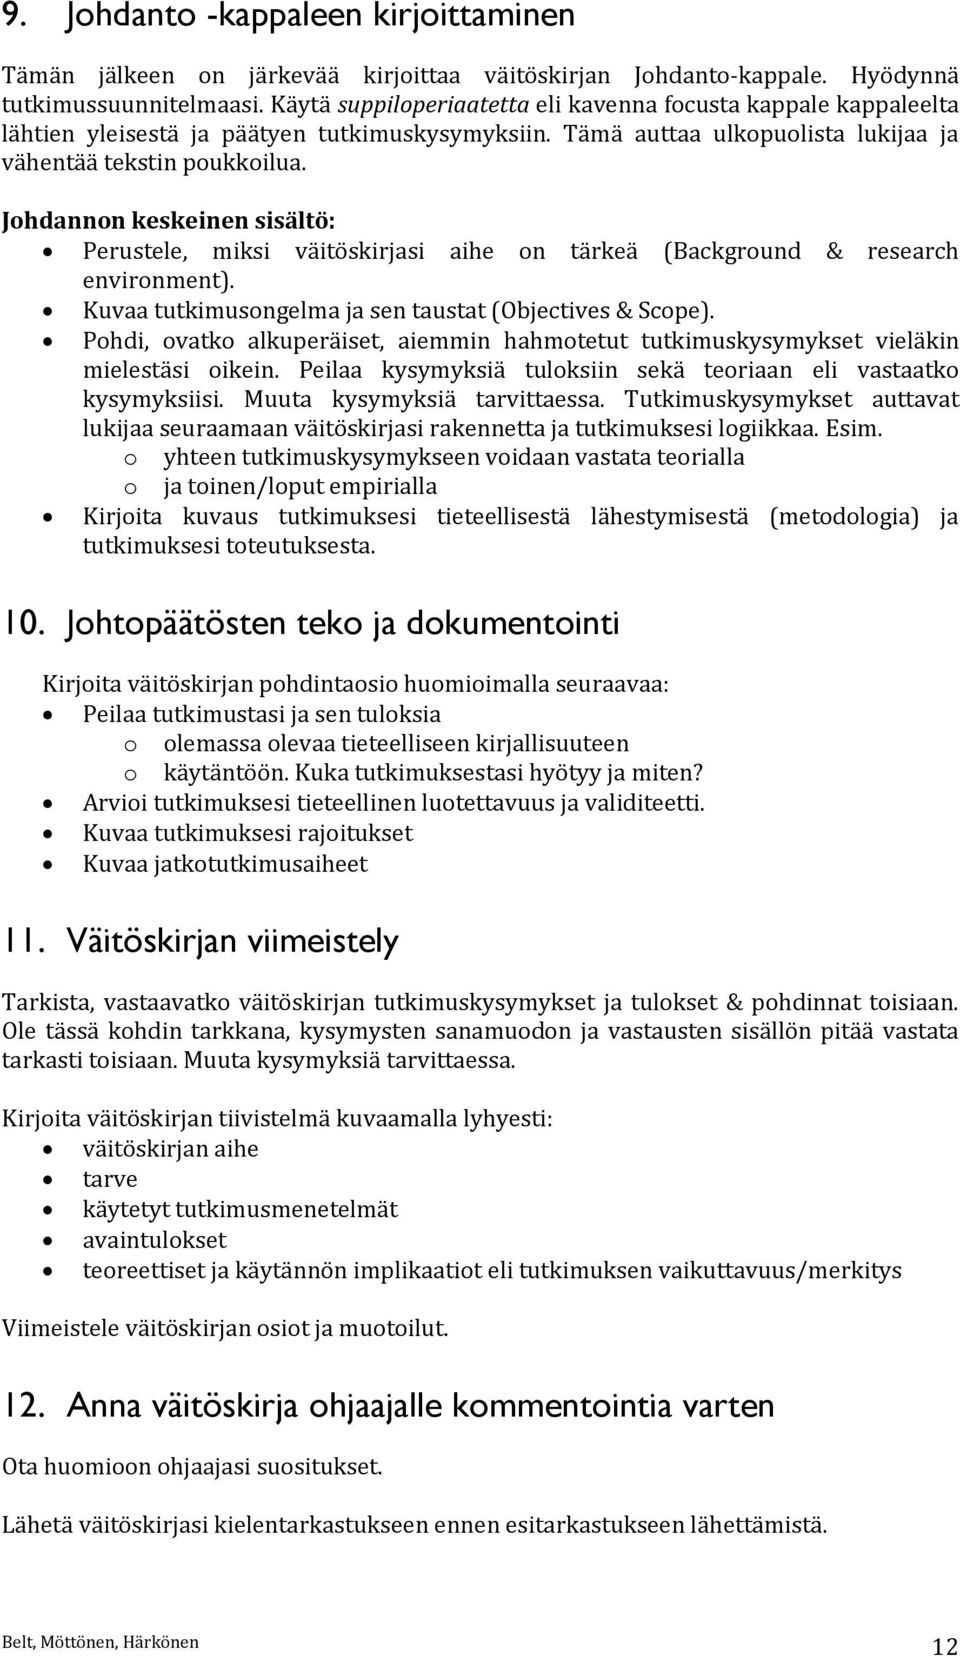 Johdannon keskeinen sisältö: Perustele, miksi väitöskirjasi aihe on tärkeä (Background & research environment). Kuvaa tutkimusongelma ja sen taustat (Objectives & Scope).